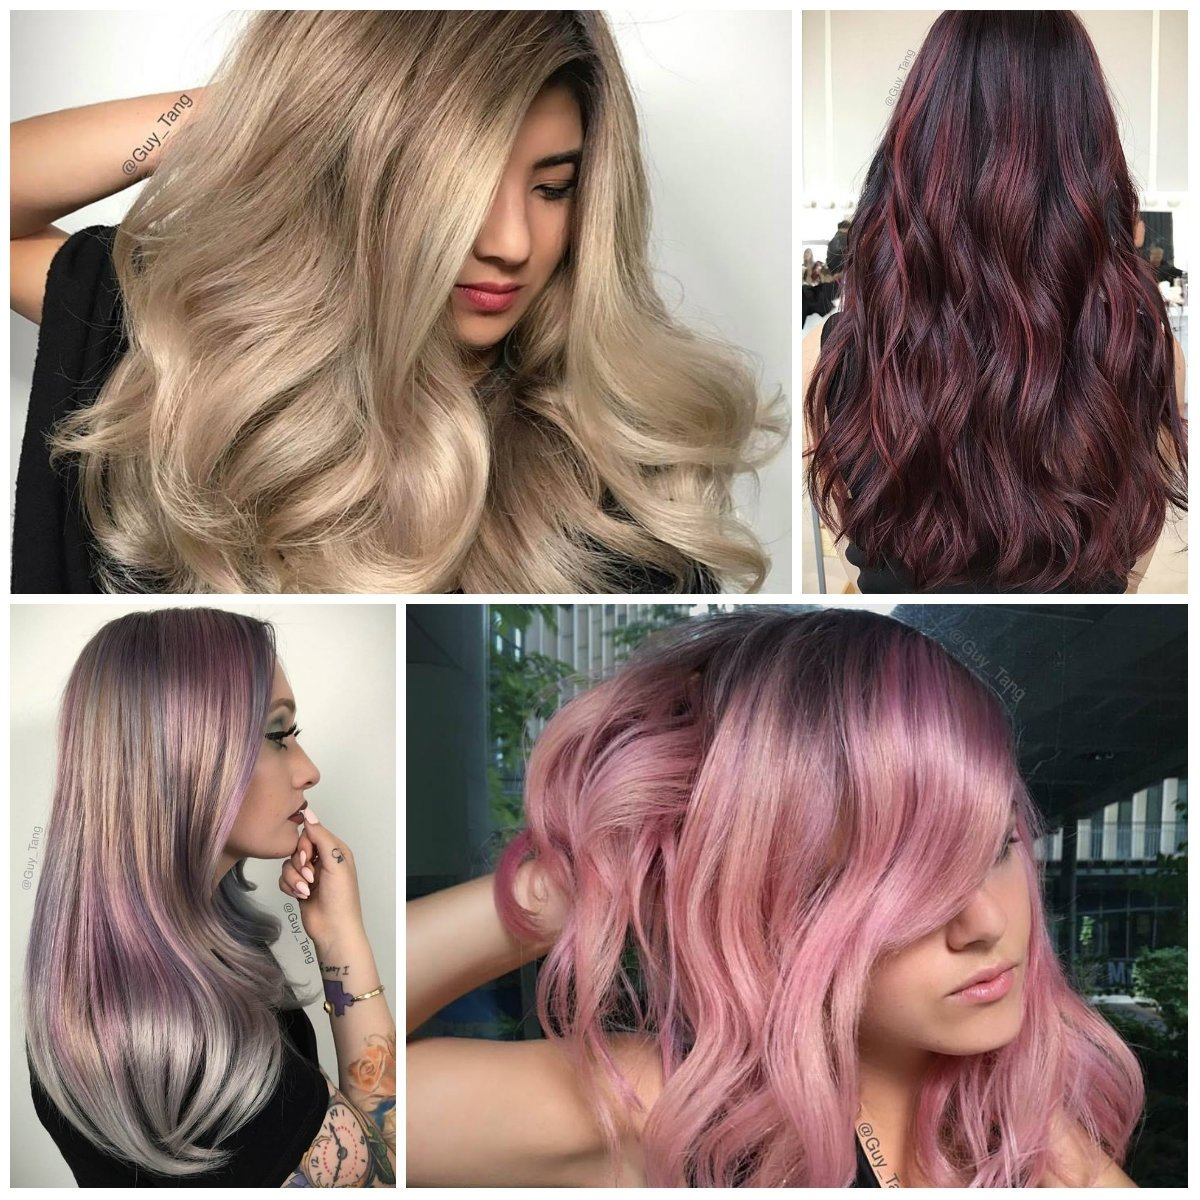 10 Perfect Funky Hair Color Ideas For Brunettes funky hair color trends 20 with funky hair color trends with 2021